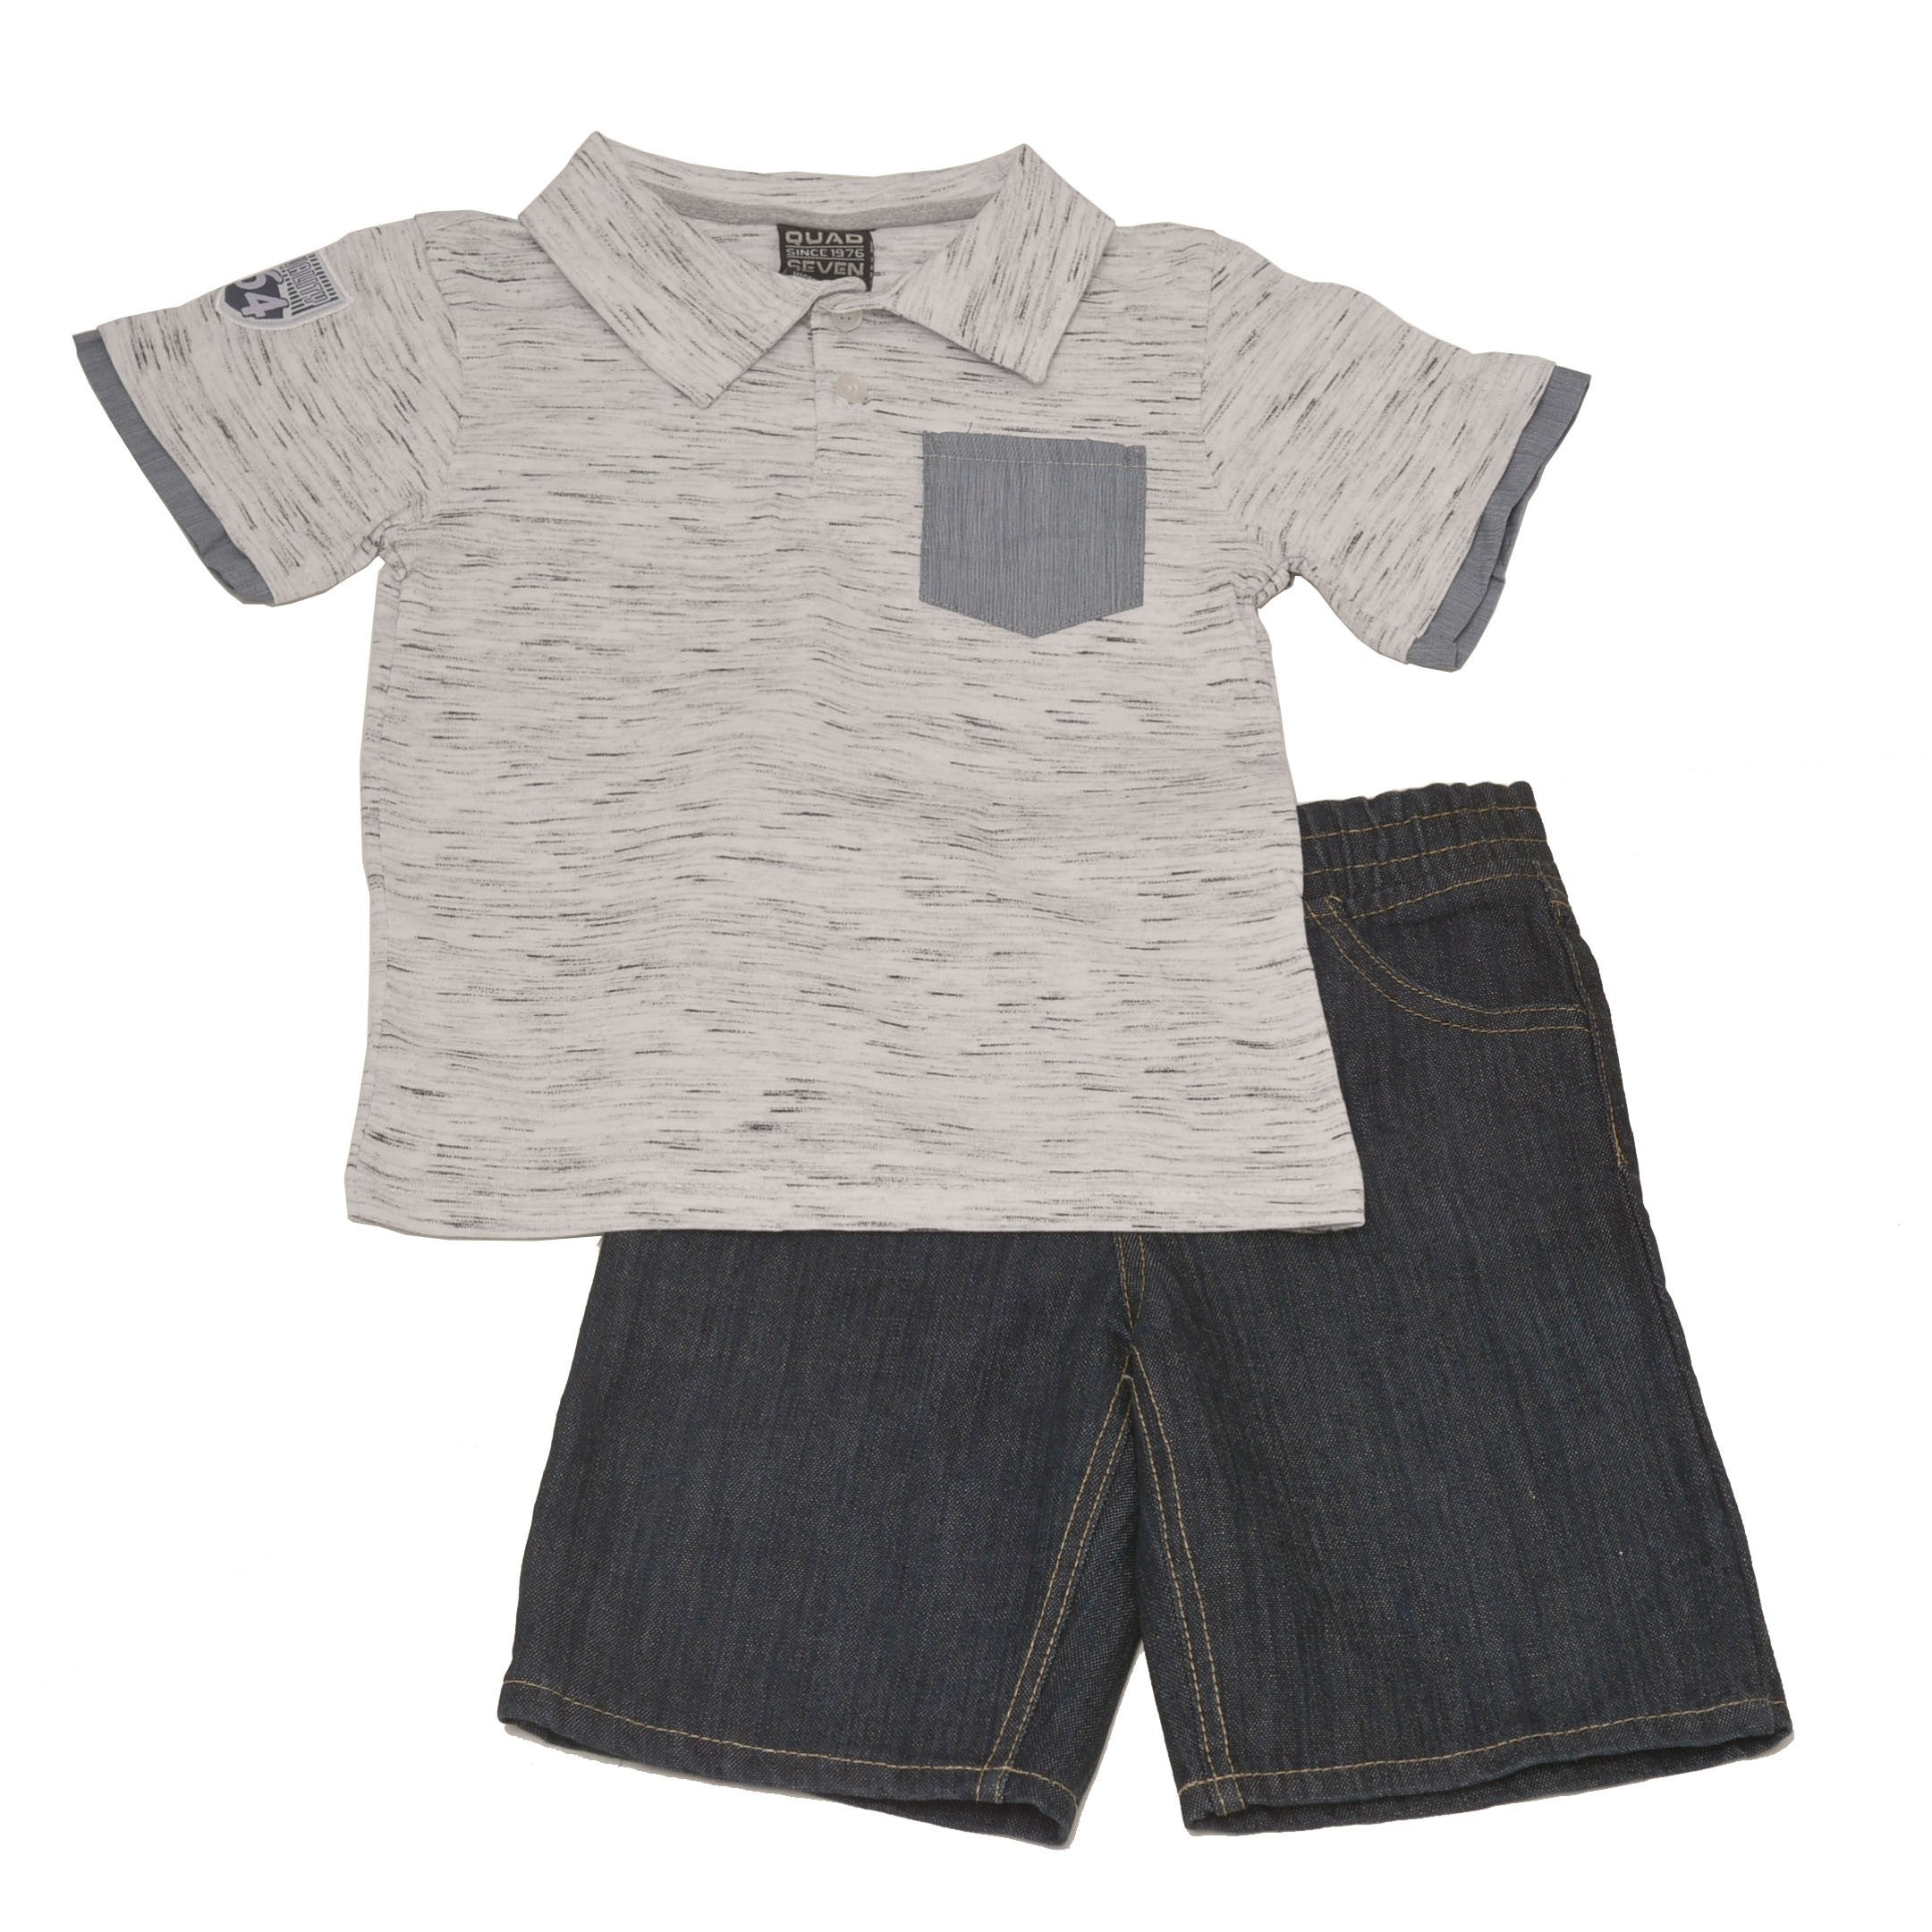 Quad Seven Boys 2-Piece Shorts Set Outfit